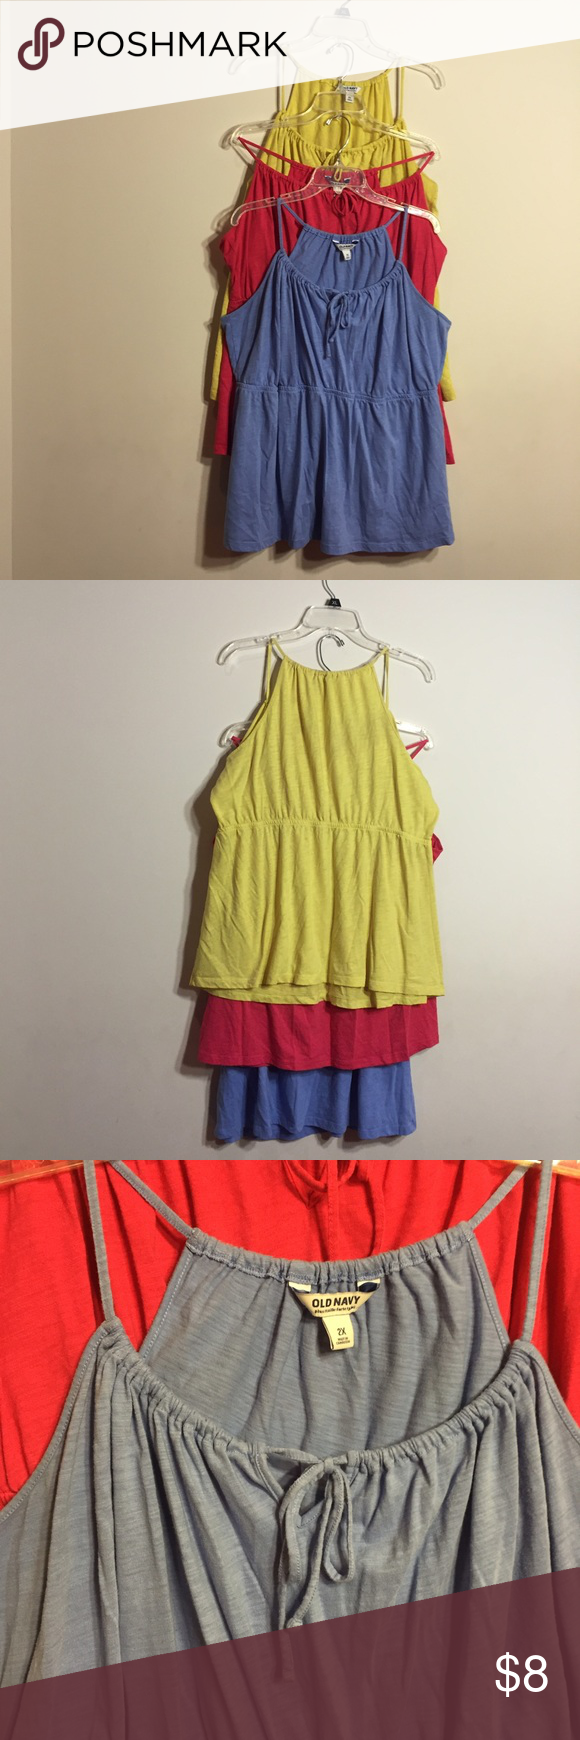 Set of three light weight Old Navy tank tops These thin, lightweight tanks are great for hot summer days. Multiple colors with tie-front detail. Great deal! Old Navy Tops Tank Tops